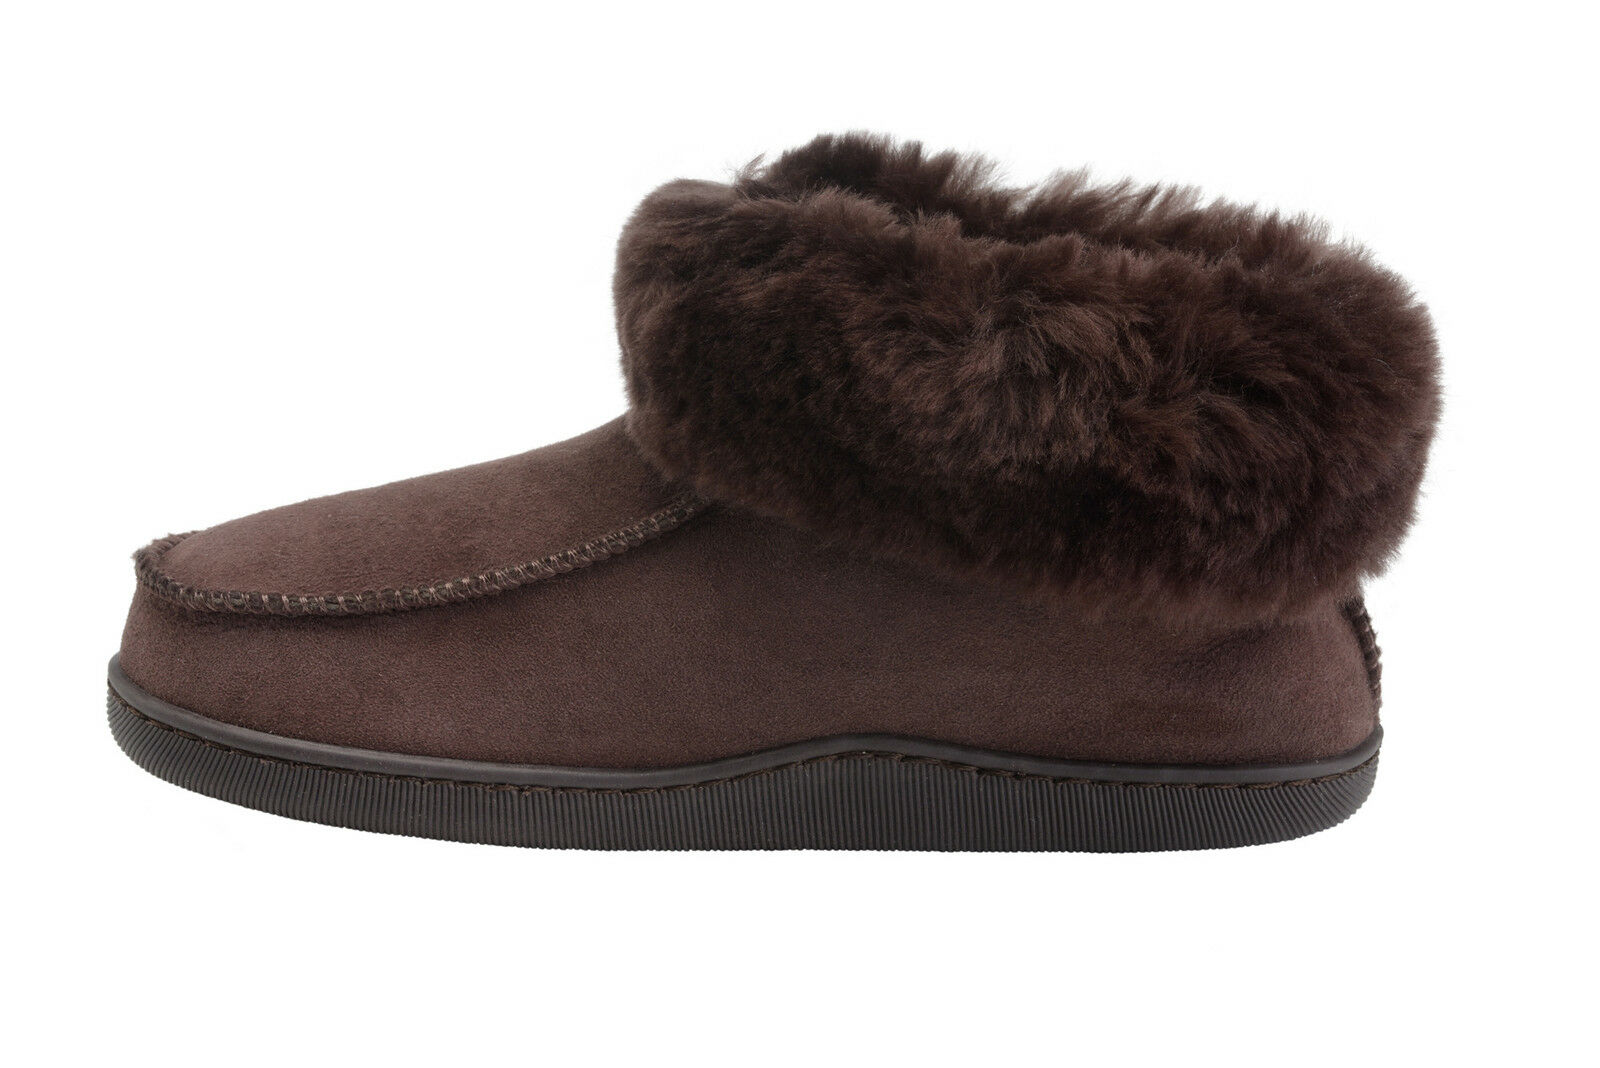 New  Herren Damenschuhe Slippers Genuine Sheepskin Booties House Slippers Damenschuhe Schuhes with Wool Lining 655ee7